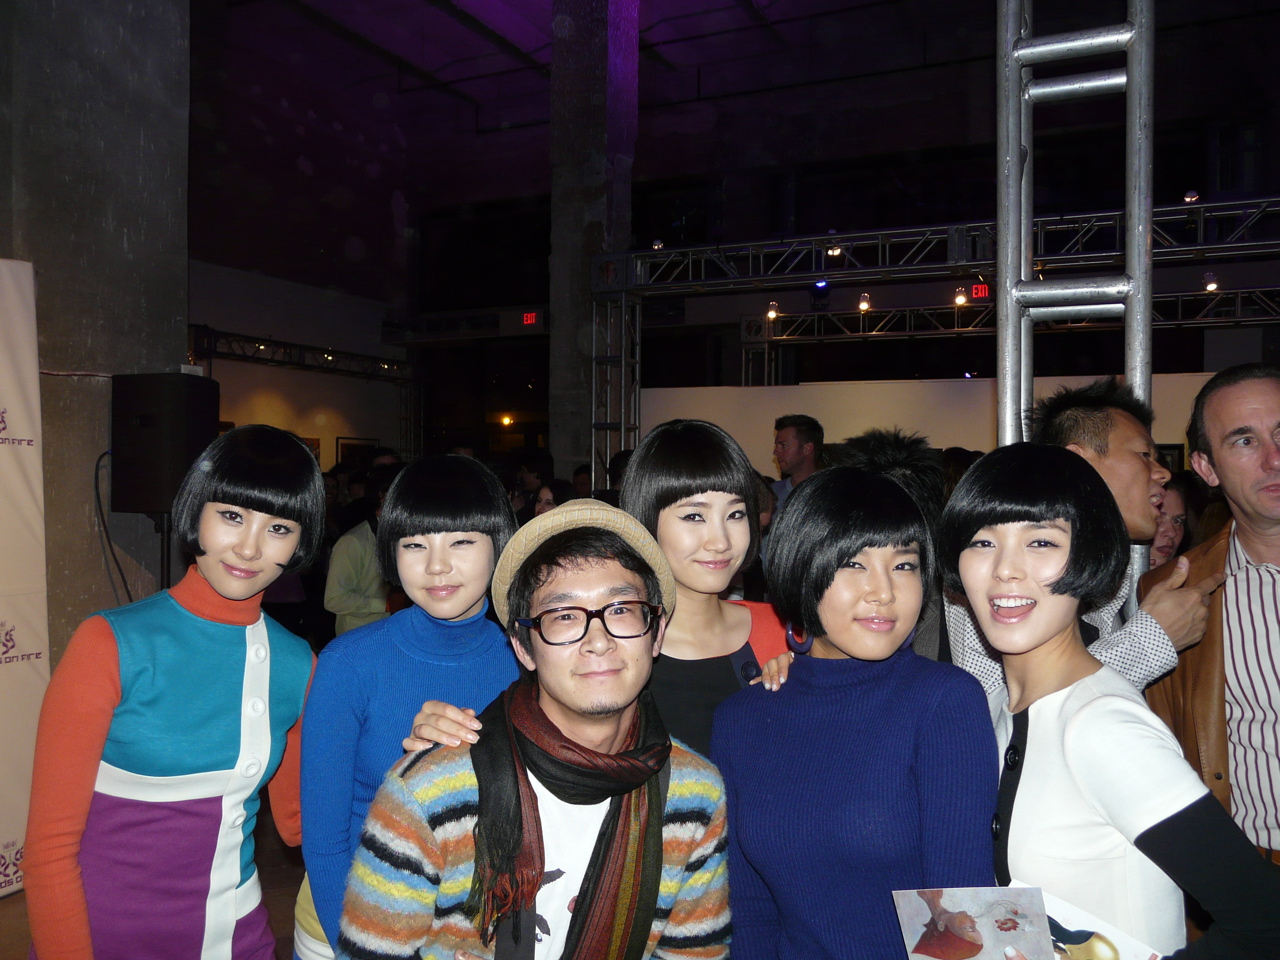 Yoskay & Korean super girl group Wondergirls (invited by Will.i.am)